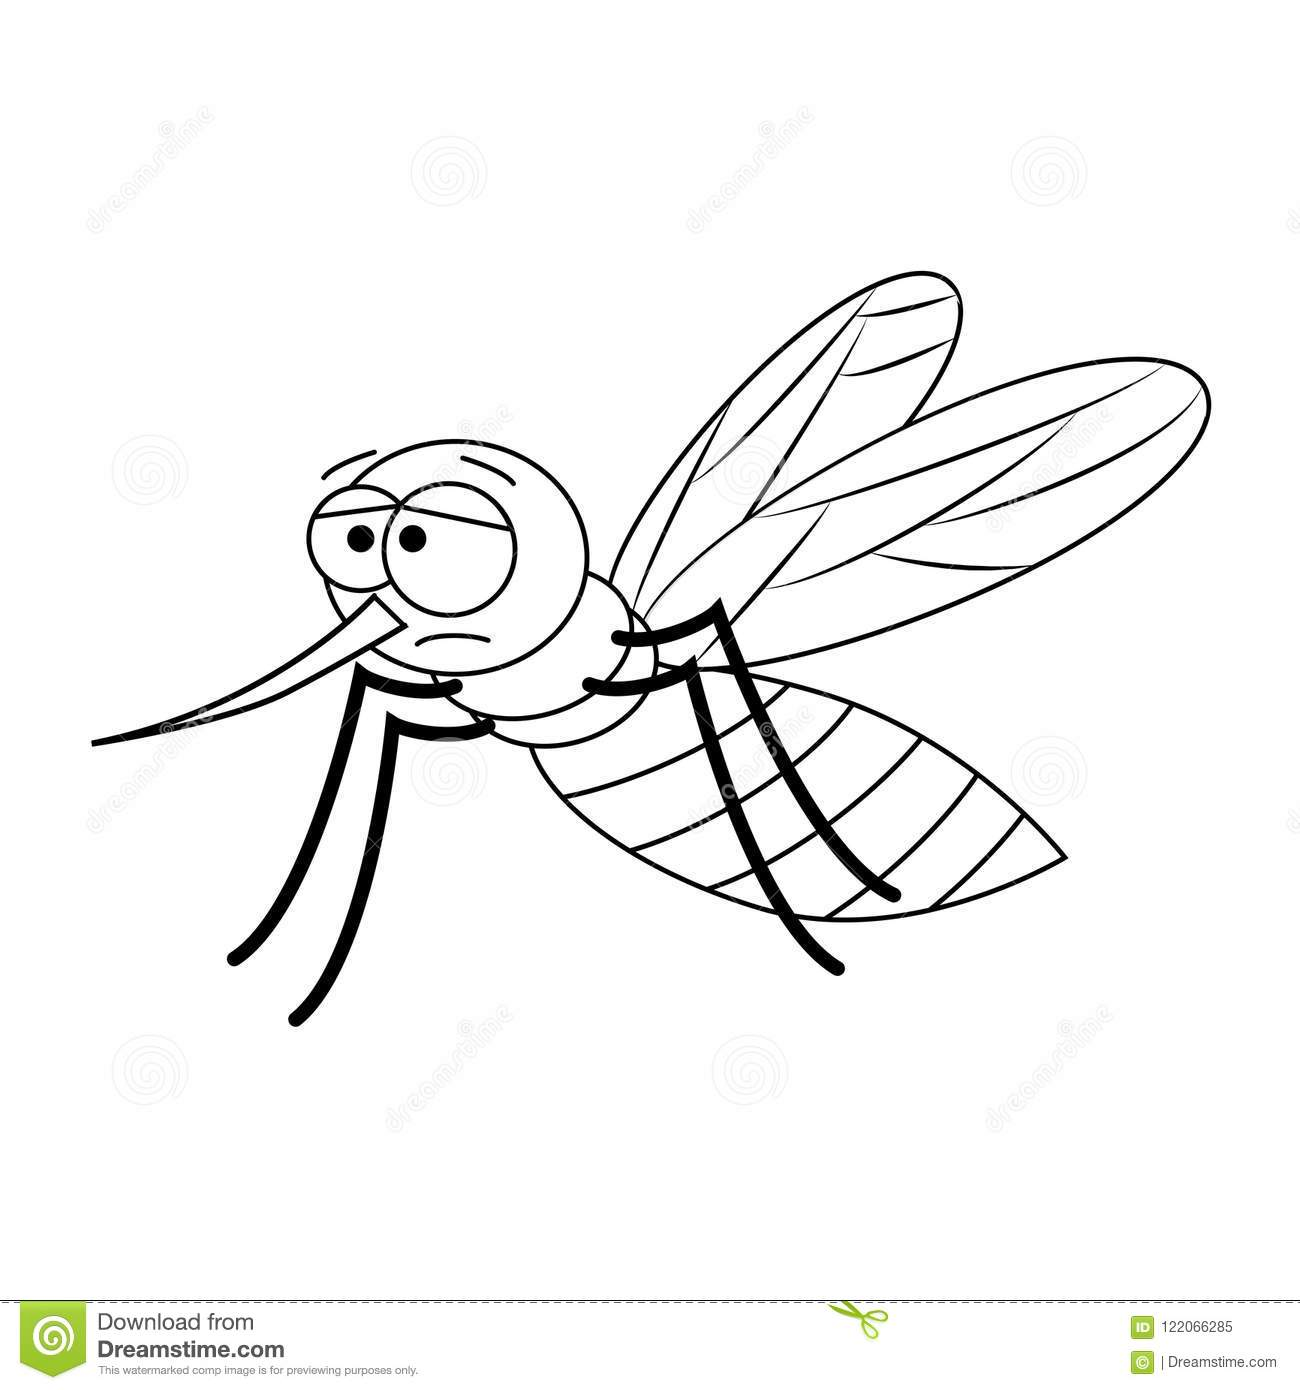 Colorless Funny Cartoon Mosquito. Stock Vector - Illustration of ...